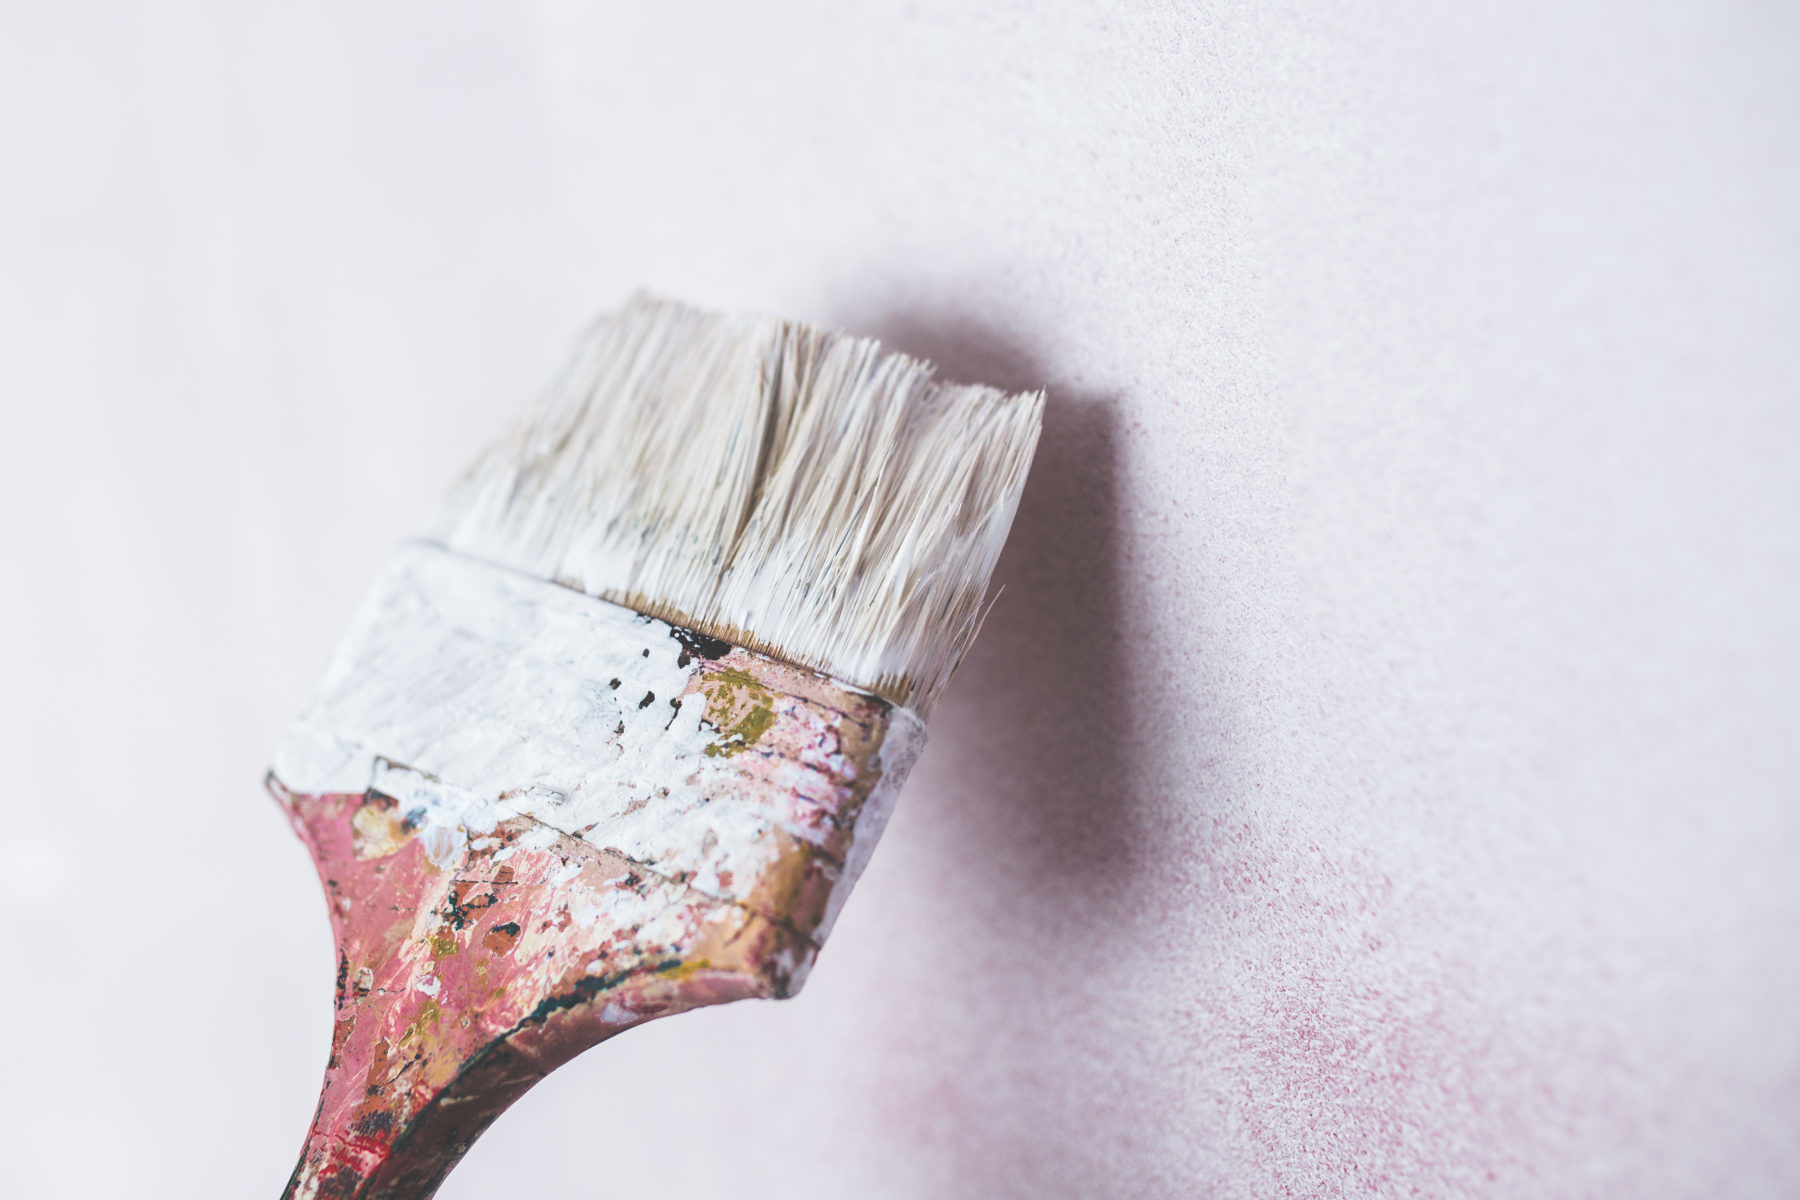 Large Inventory Of Paint And Painting Supplies